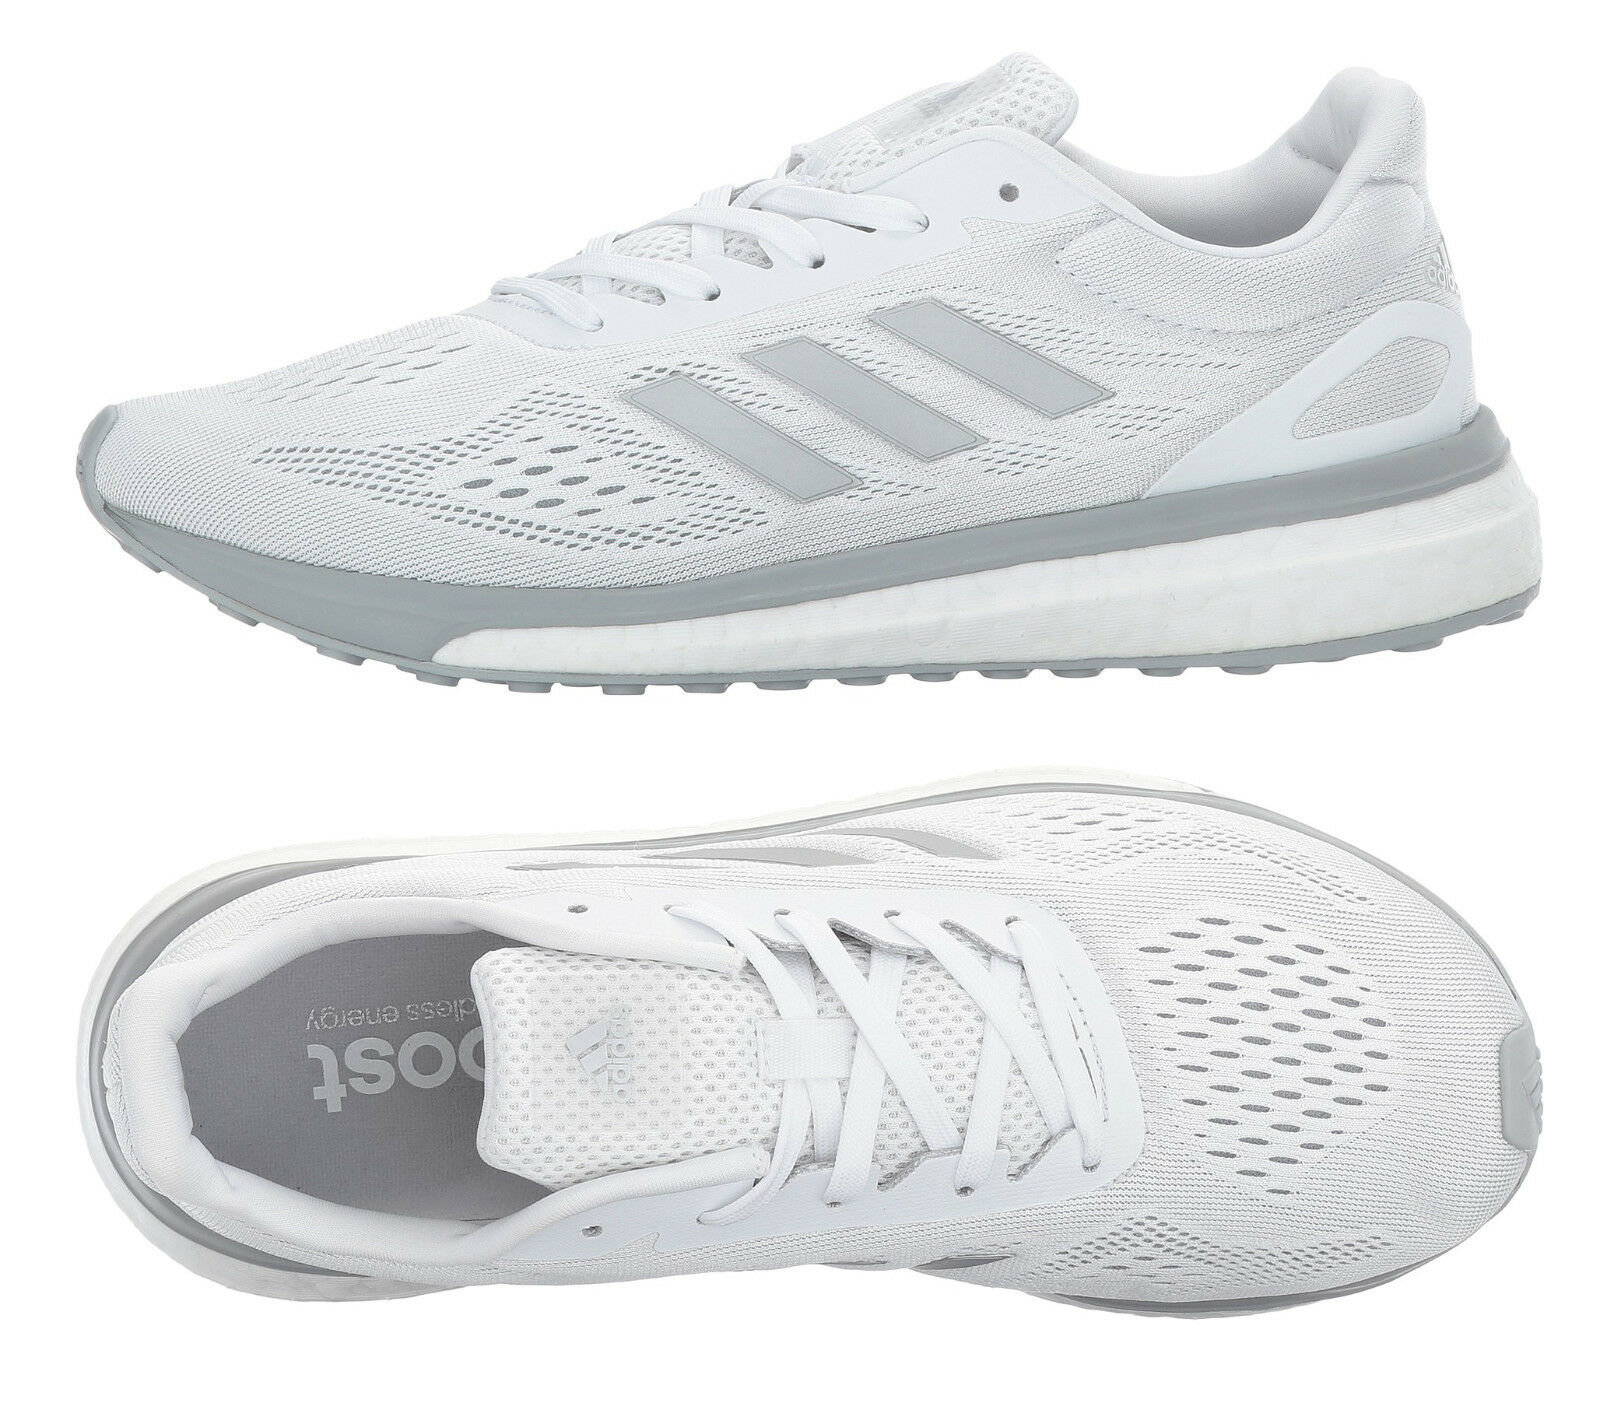 Femmes Chaussures de course Adidas Sonic Drive - Baskets blanches Adidas Boost BA7784 NEW